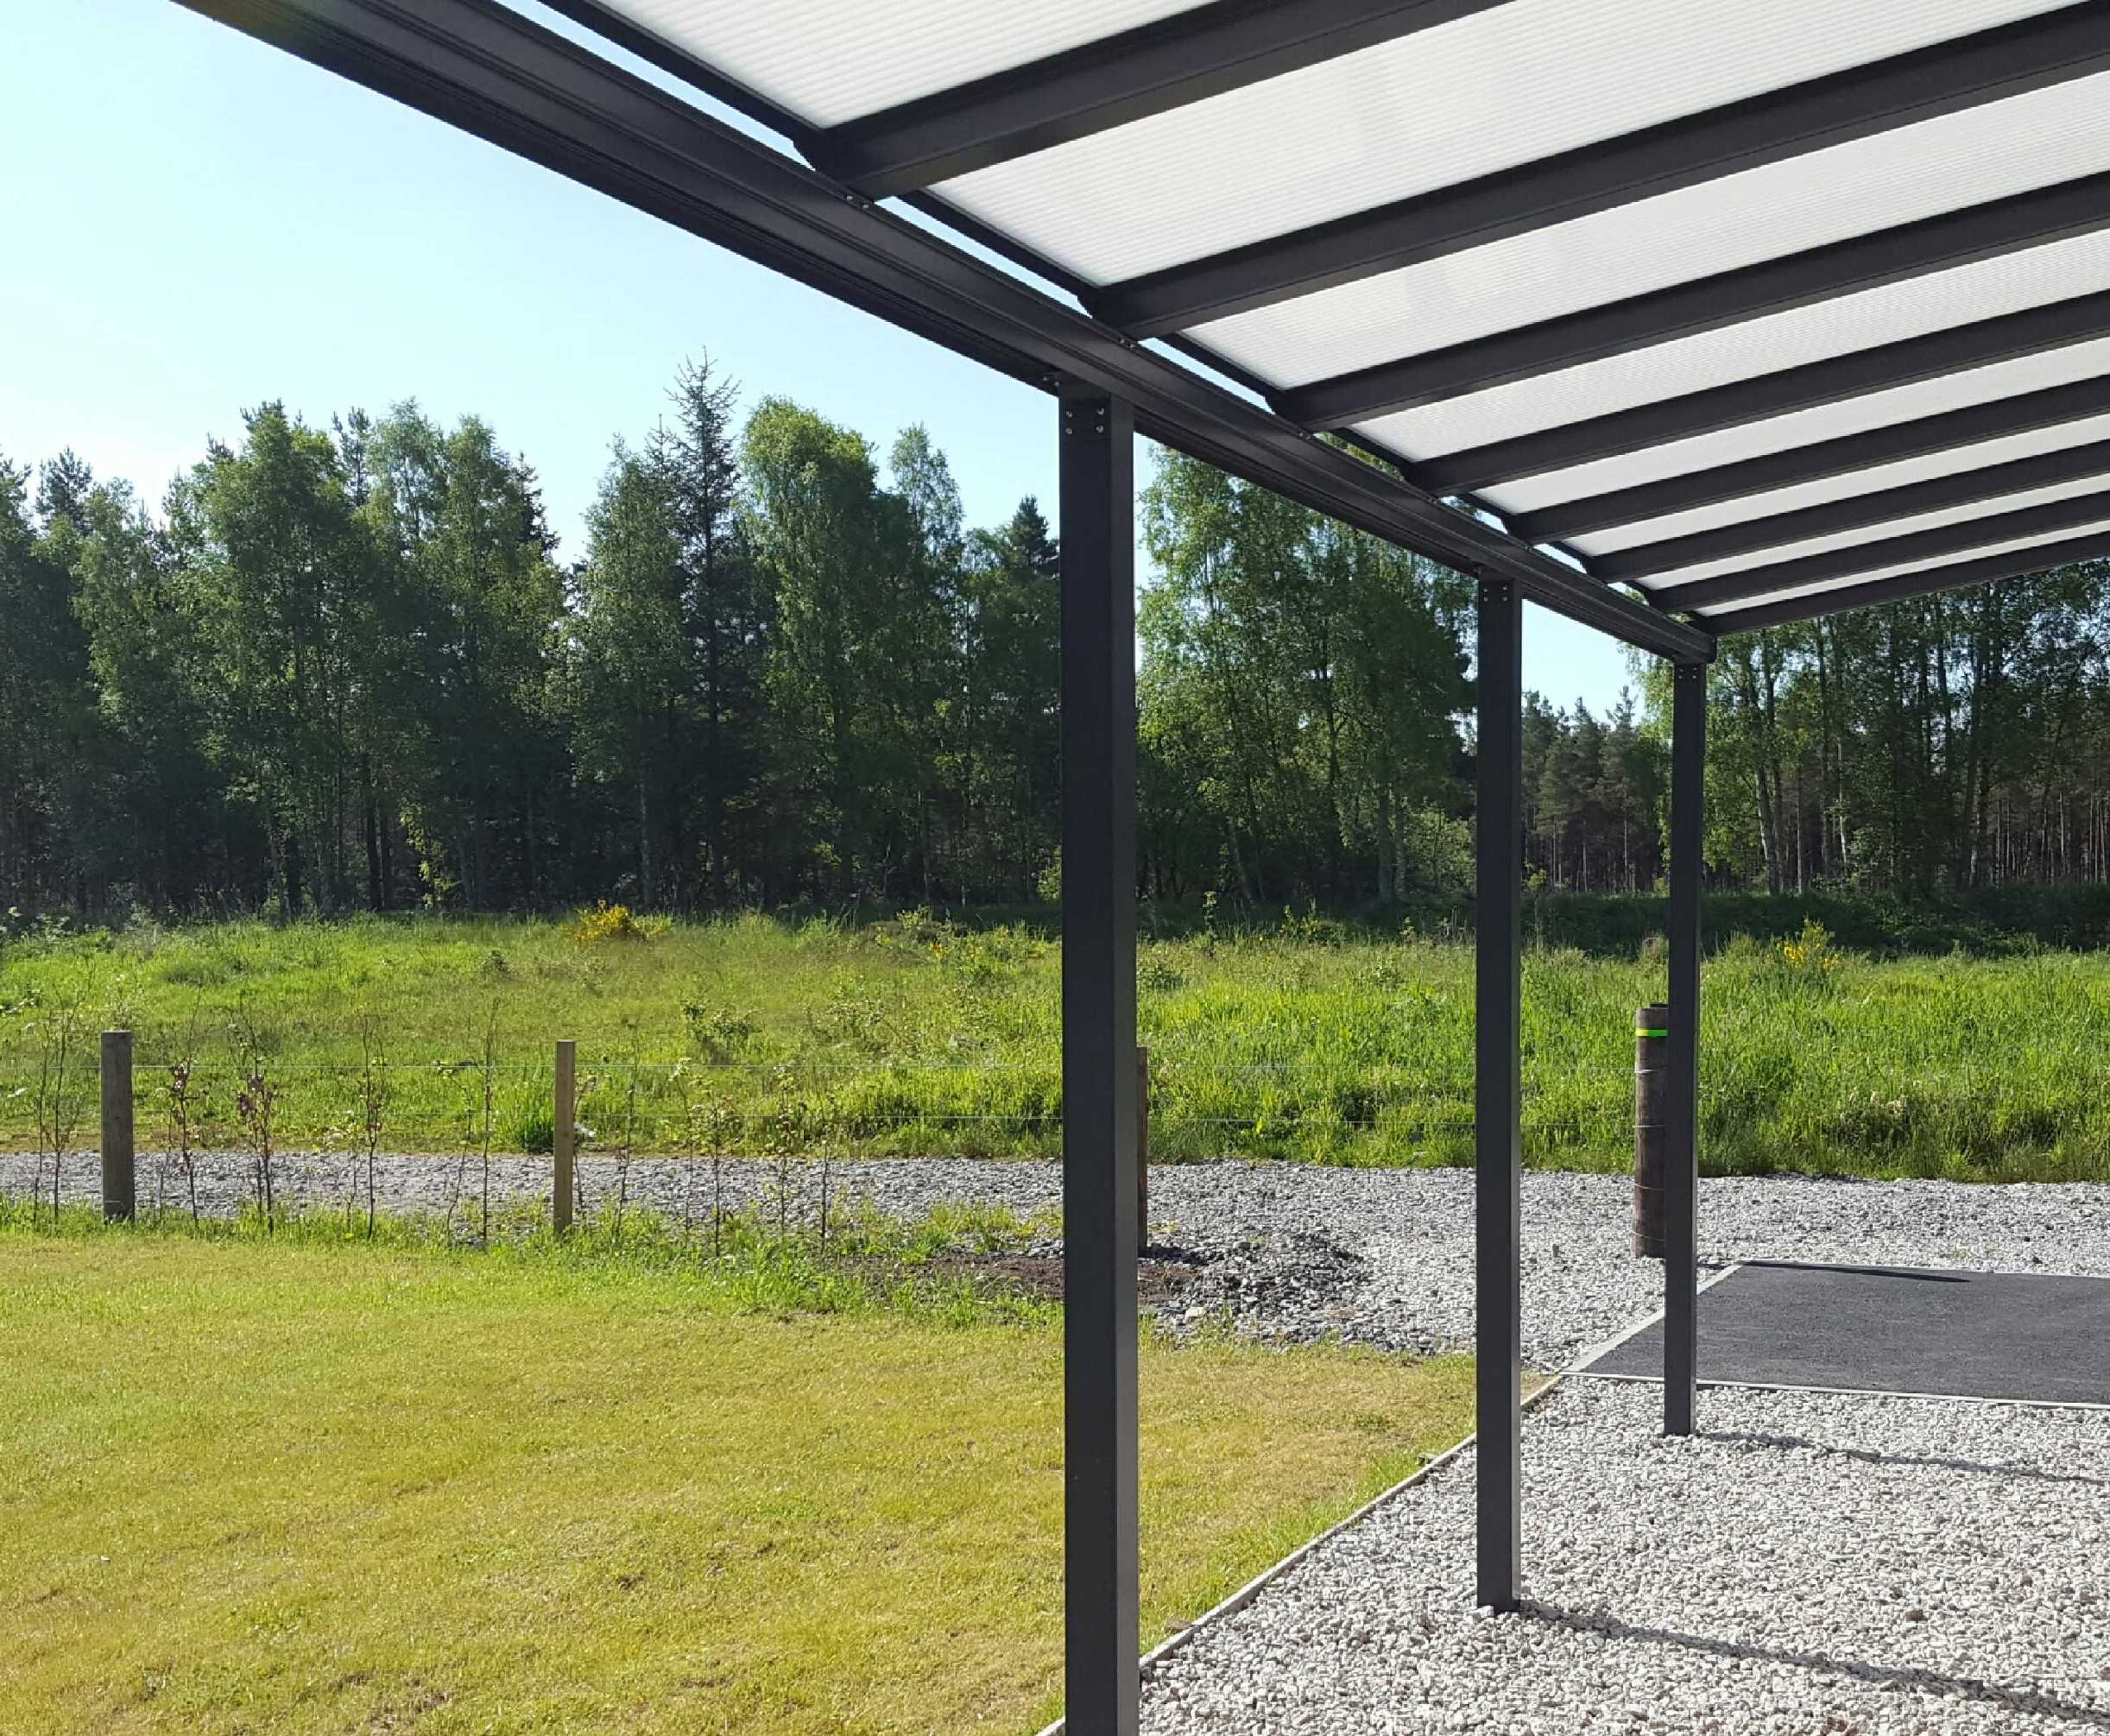 Omega Smart Lean-To Canopy, Anthracite Grey, 16mm Polycarbonate Glazing - 4.8m (W) x 4.5m (P), (3) Supporting Posts